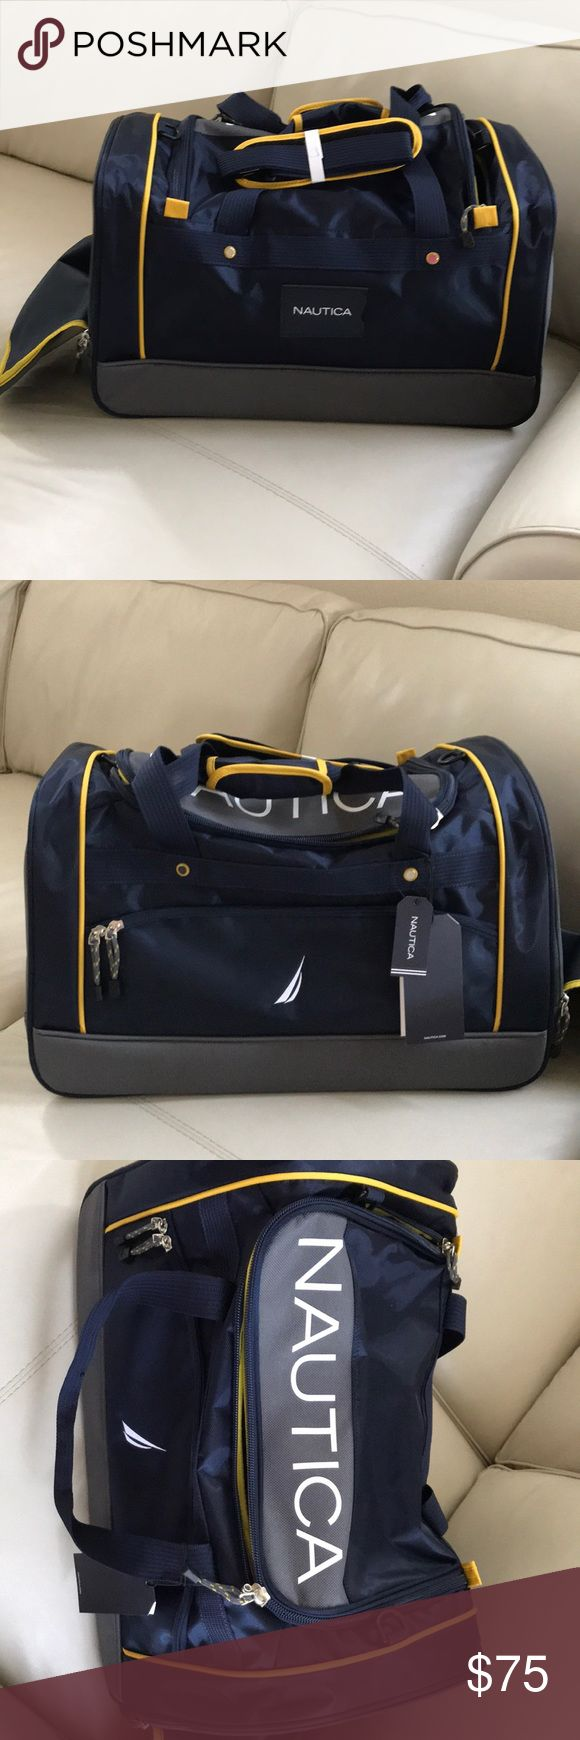 """Nautica sports travel athletic carry duffle bag From the nautical monitor collection, this new with tags ($240 retail) athletic bag / travel carry Duffle is the perfect piece of lightweight luggage. Features a side loading pocket for separating laundry or gear.   22"""" x 13"""" x 12"""" Grey /Navy with yellow and white accents  2372C01 NT monitor 22duf Gorgeous sports bag and will ship compacted. Can provide additional photos upon request  Unisex men's or women's but I think it's a bit more on he…"""